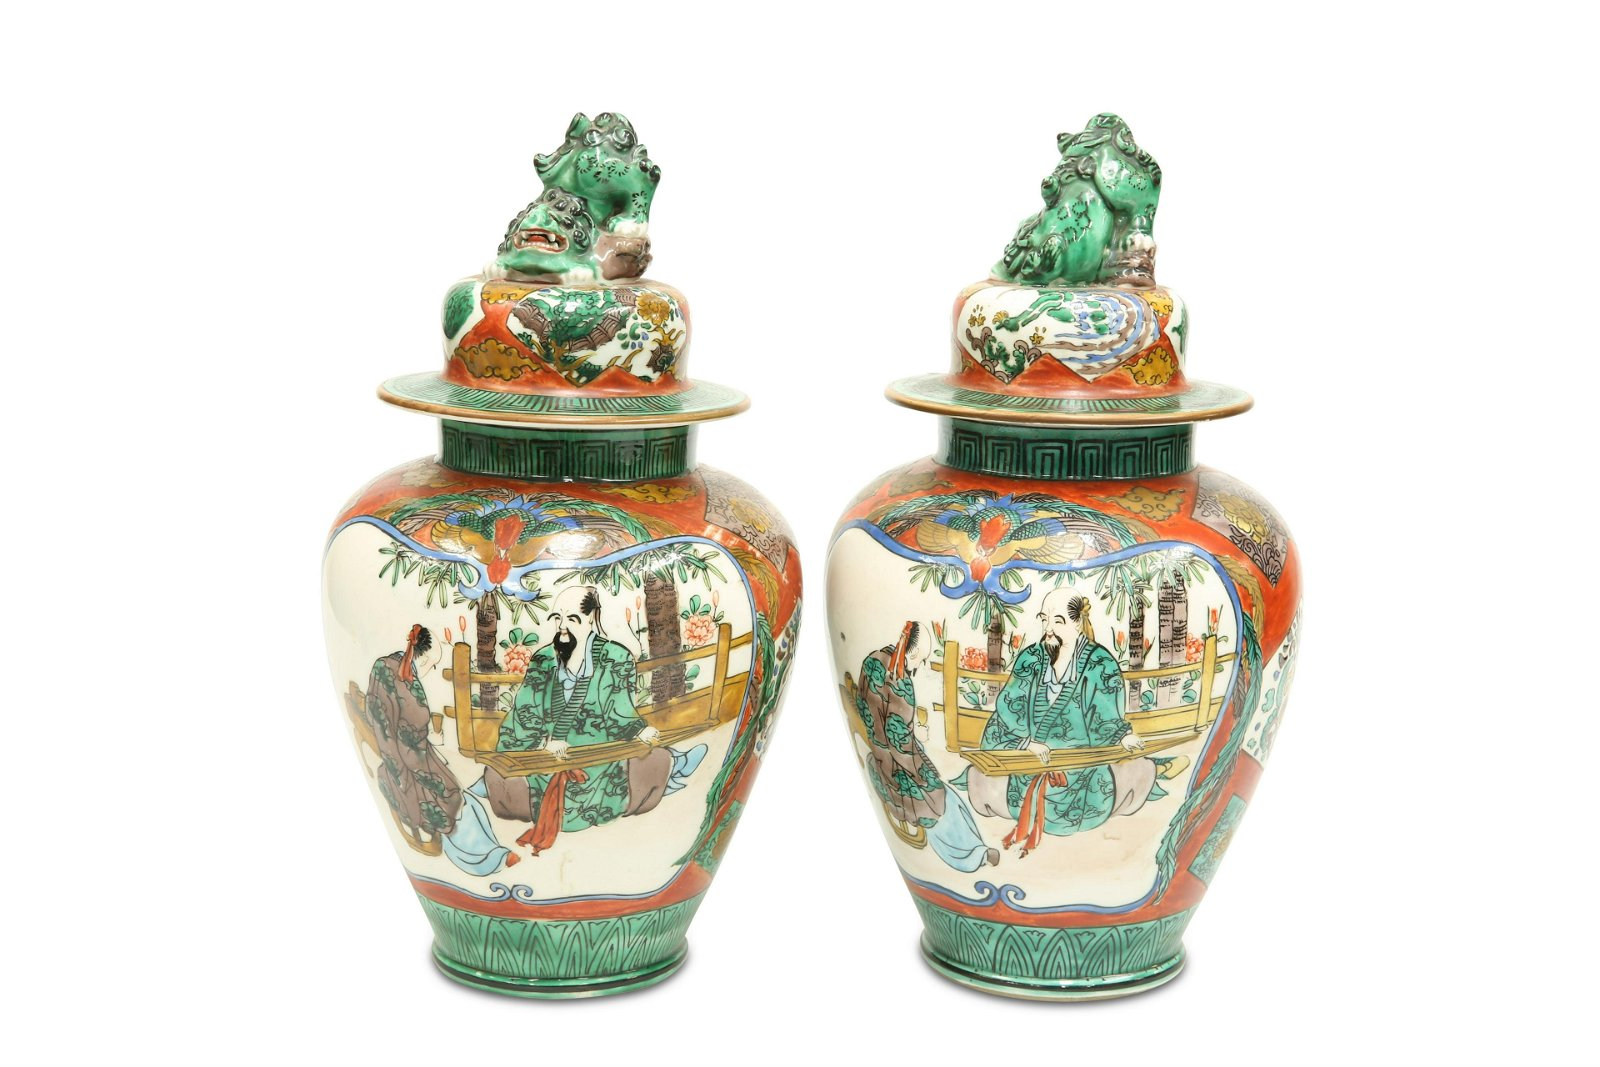 A PAIR OF CHINESE PORCELAIN VASES AND COVERS, LATE 19TH